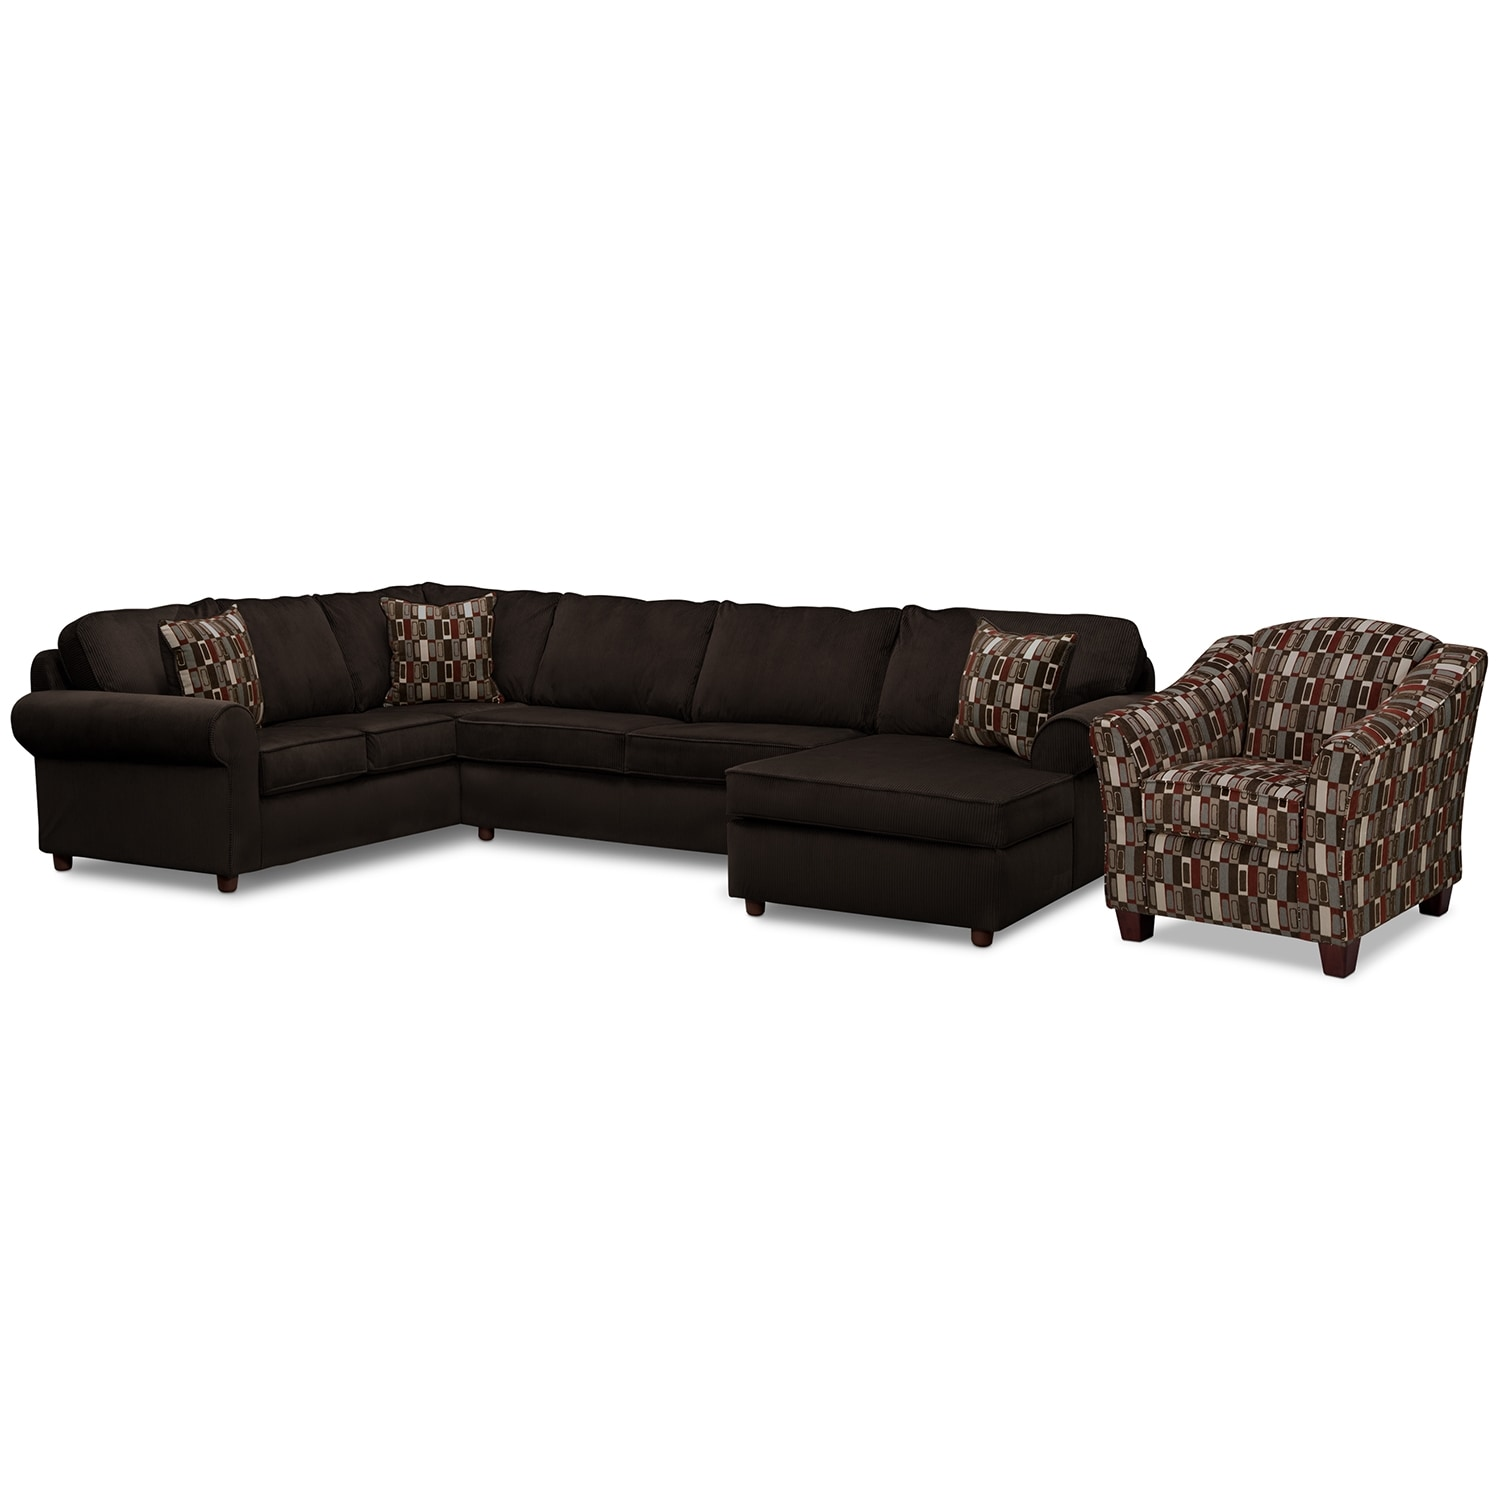 Living Room Furniture - Monarch 3 Pc. Sectional and Accent Chair